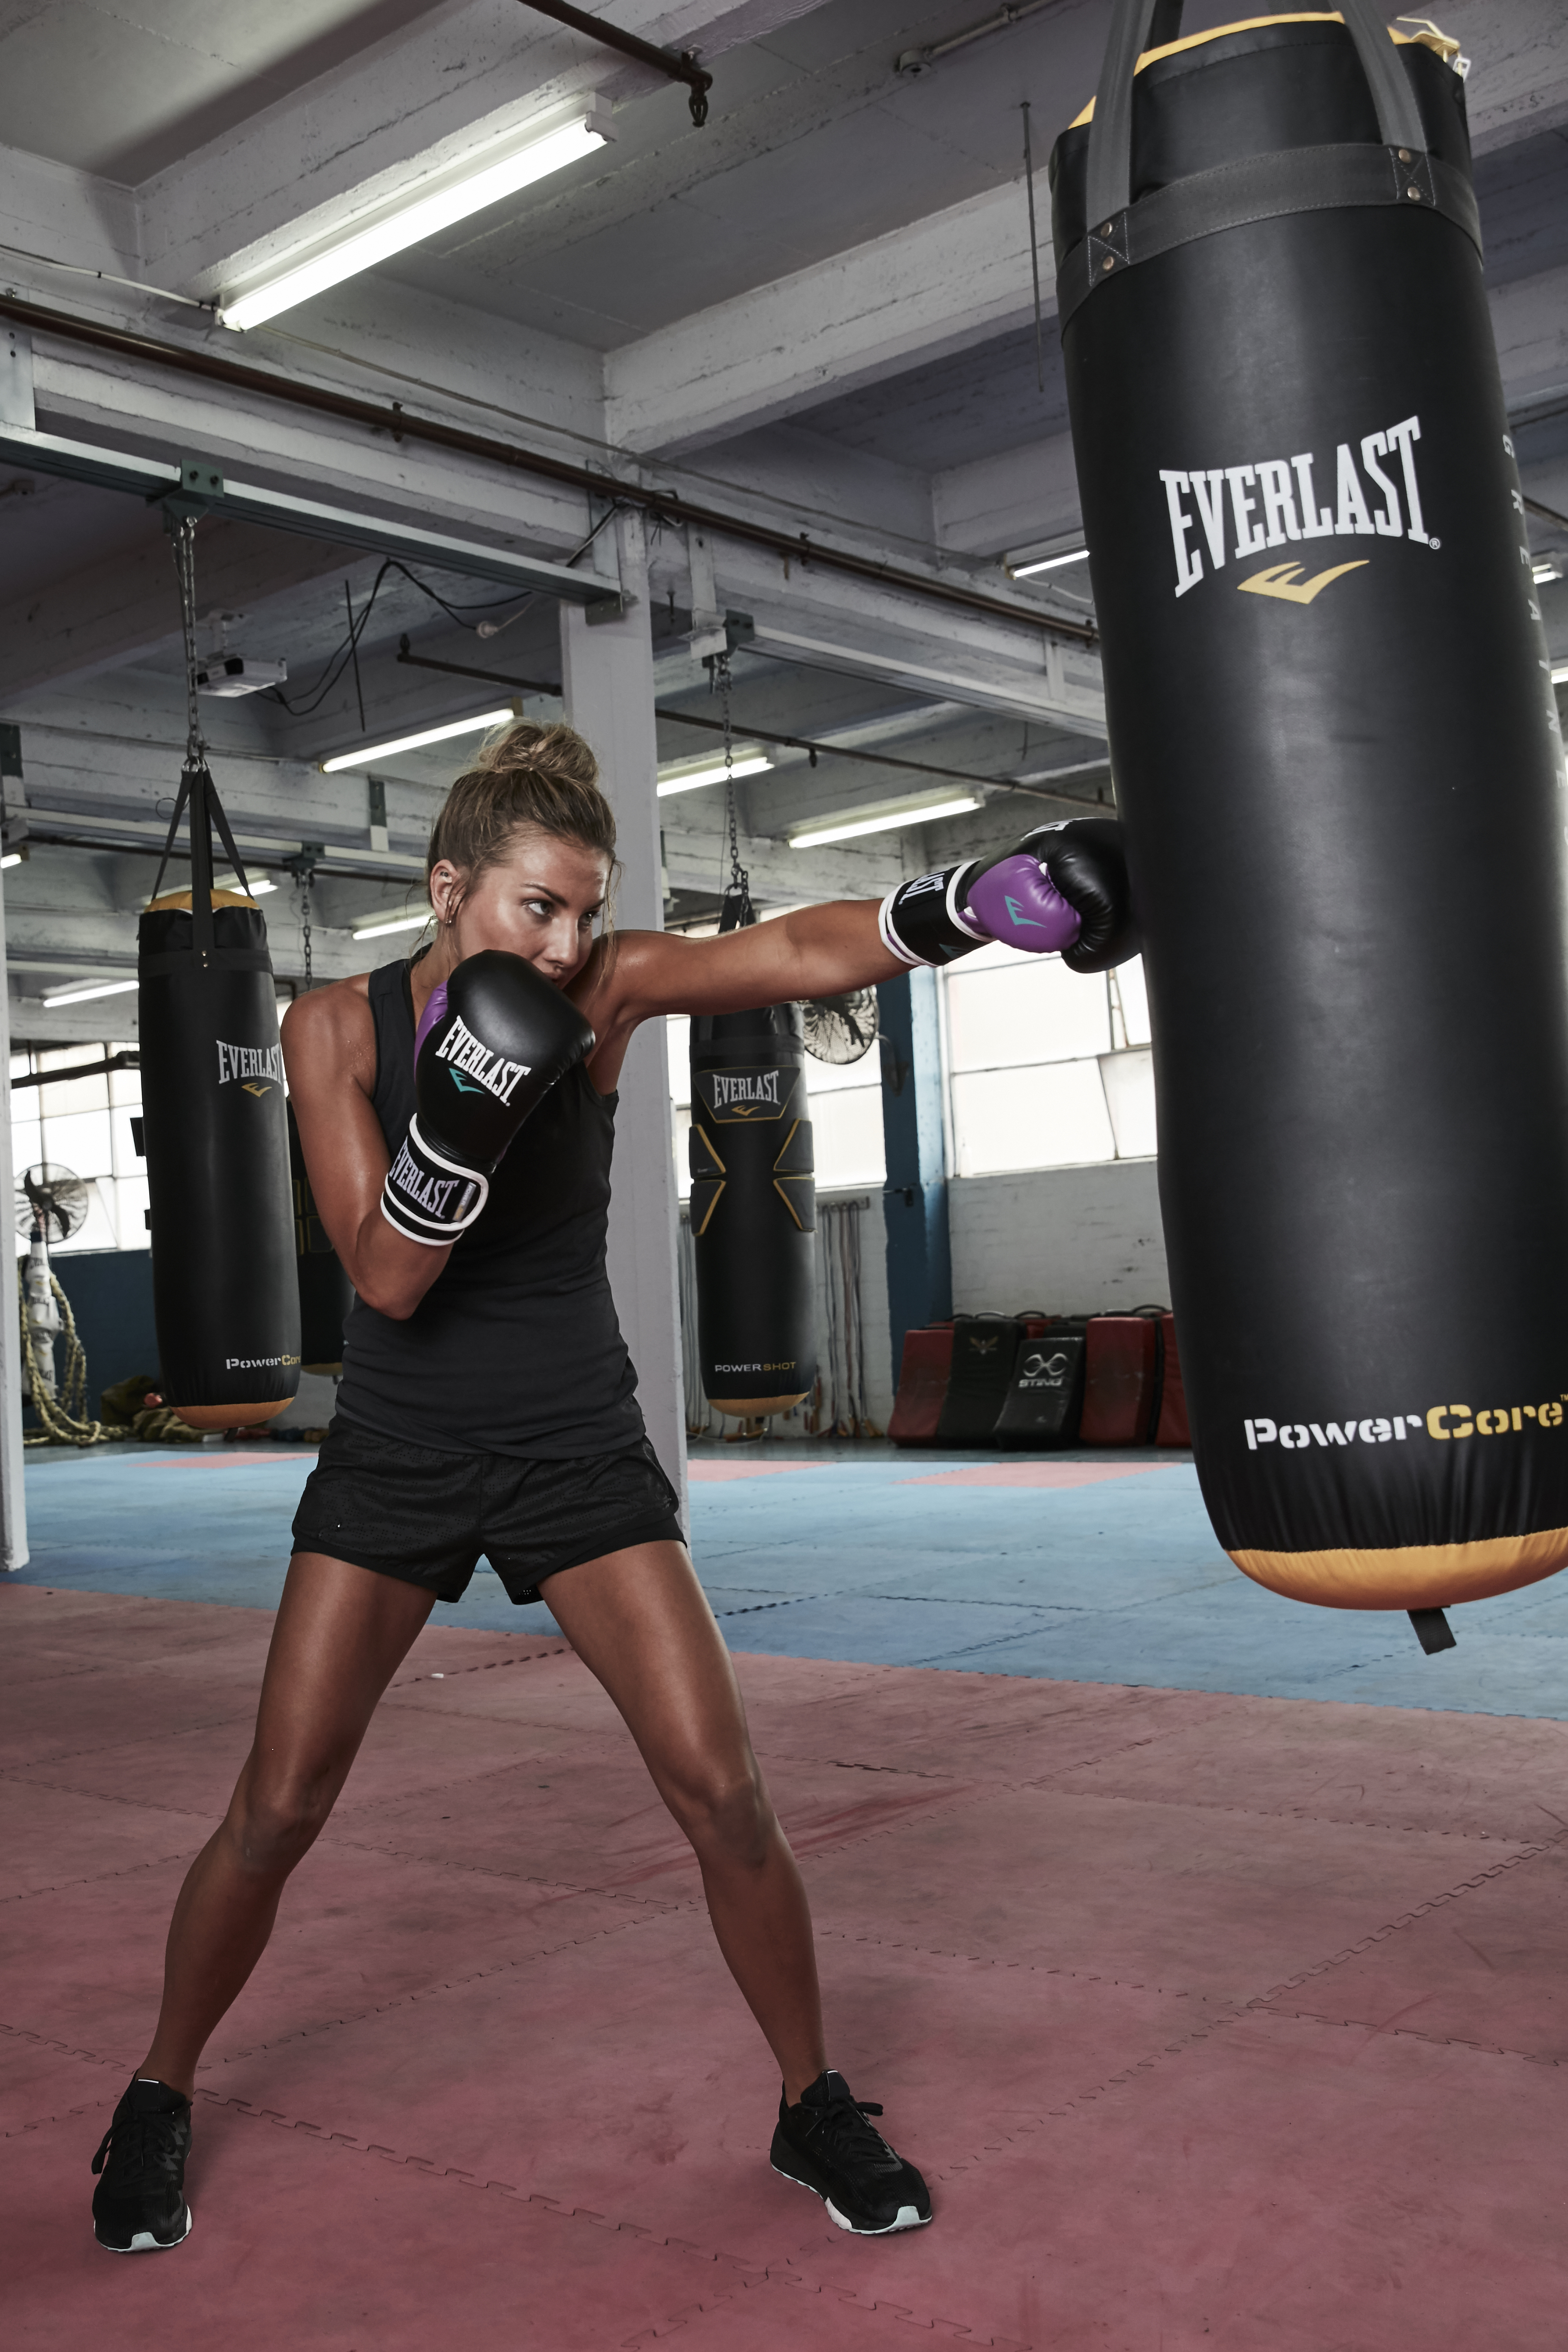 Everlast PowerLock Training Glove by Designworks Clothing Company in Melbourne VIC